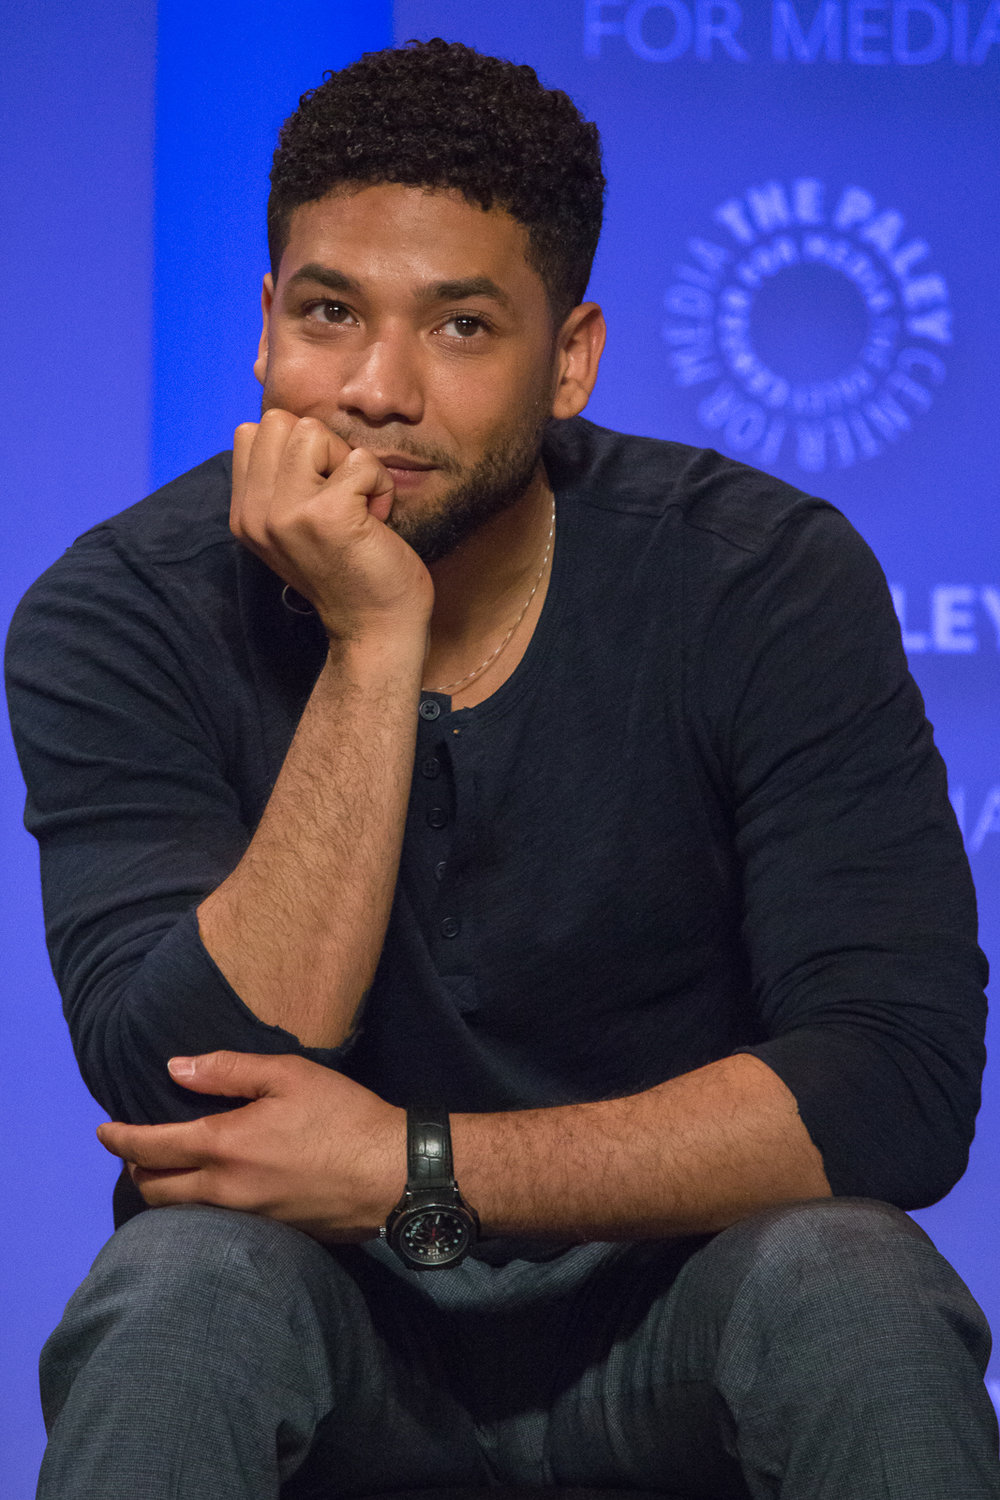 Jussie Smollett at Paley Fest in 2016